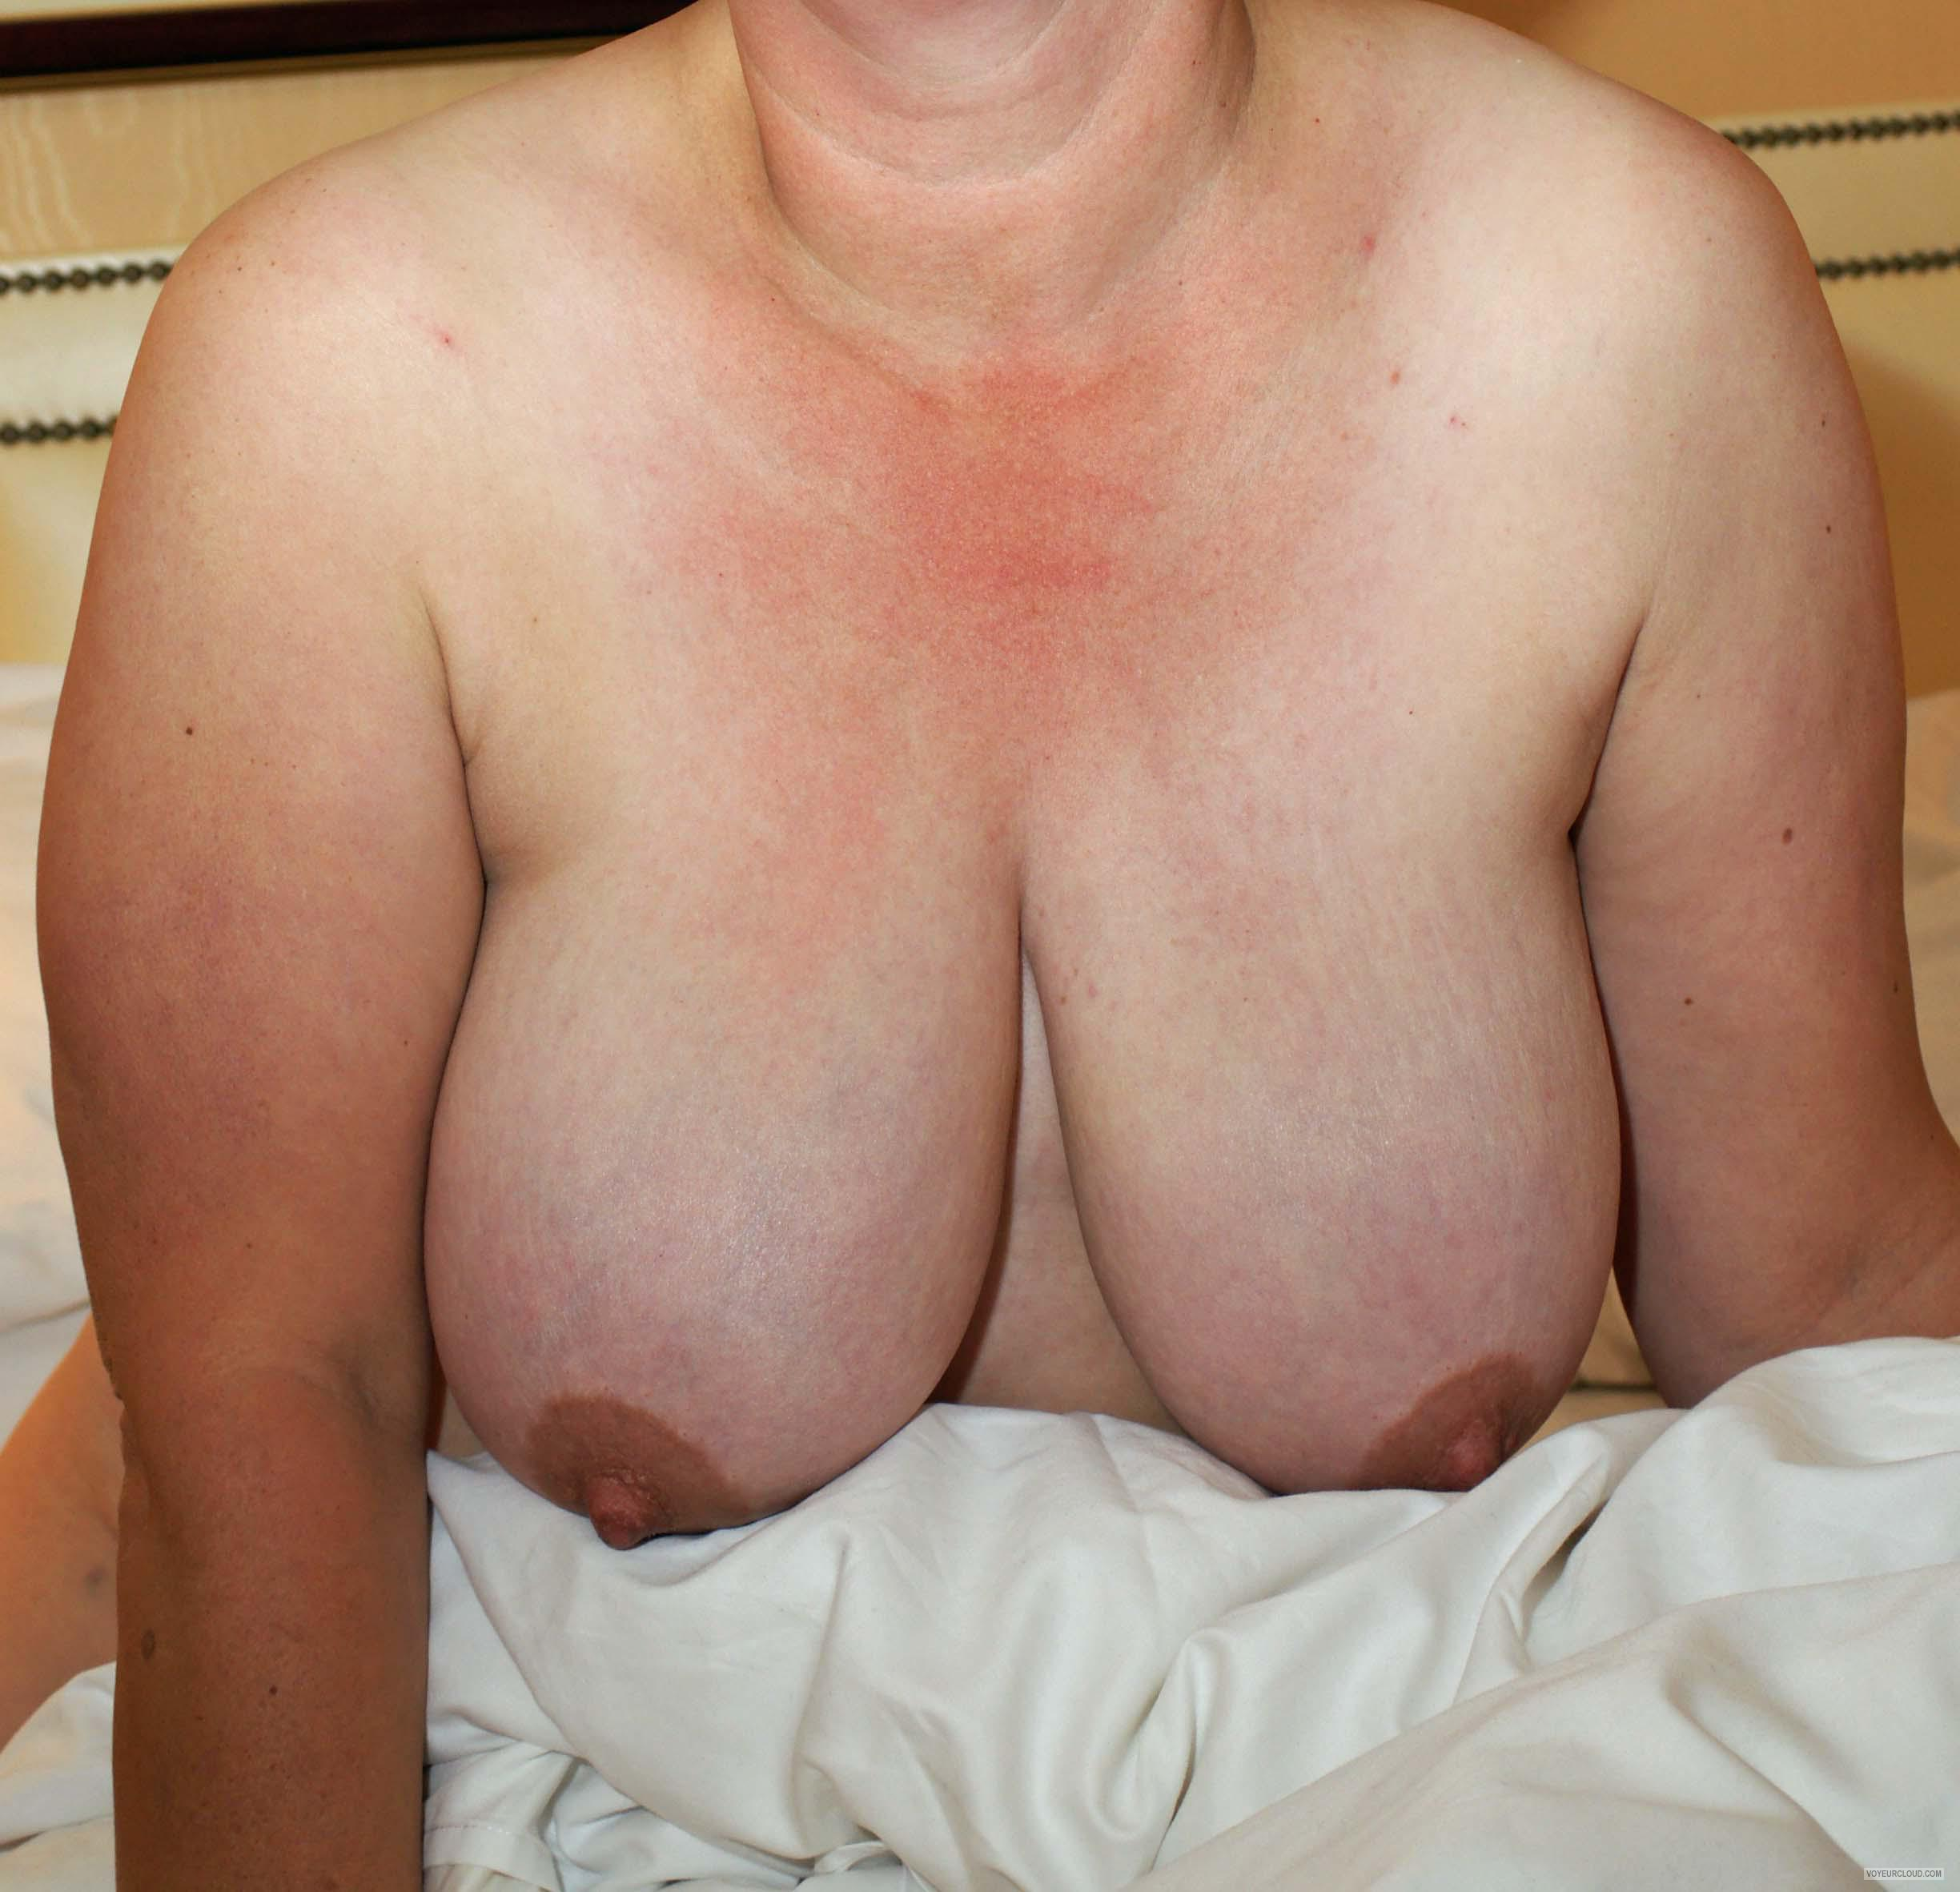 Tit Flash: Wife's Big Tits - H from United Kingdom